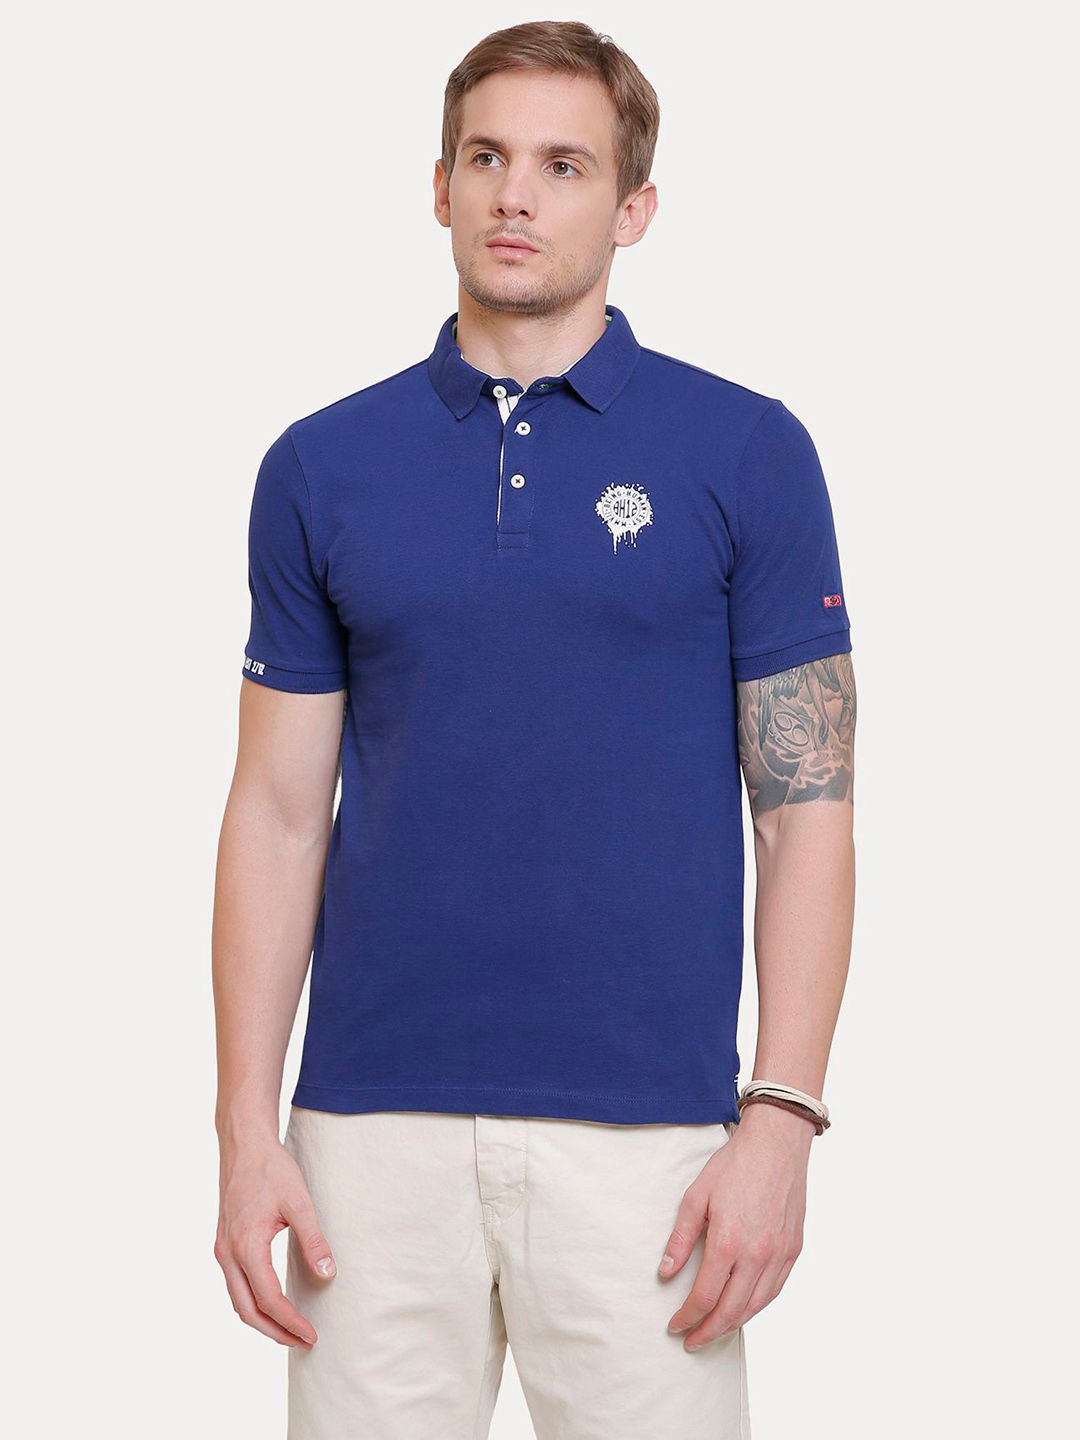 INK BLUE SOLID T-SHIRT